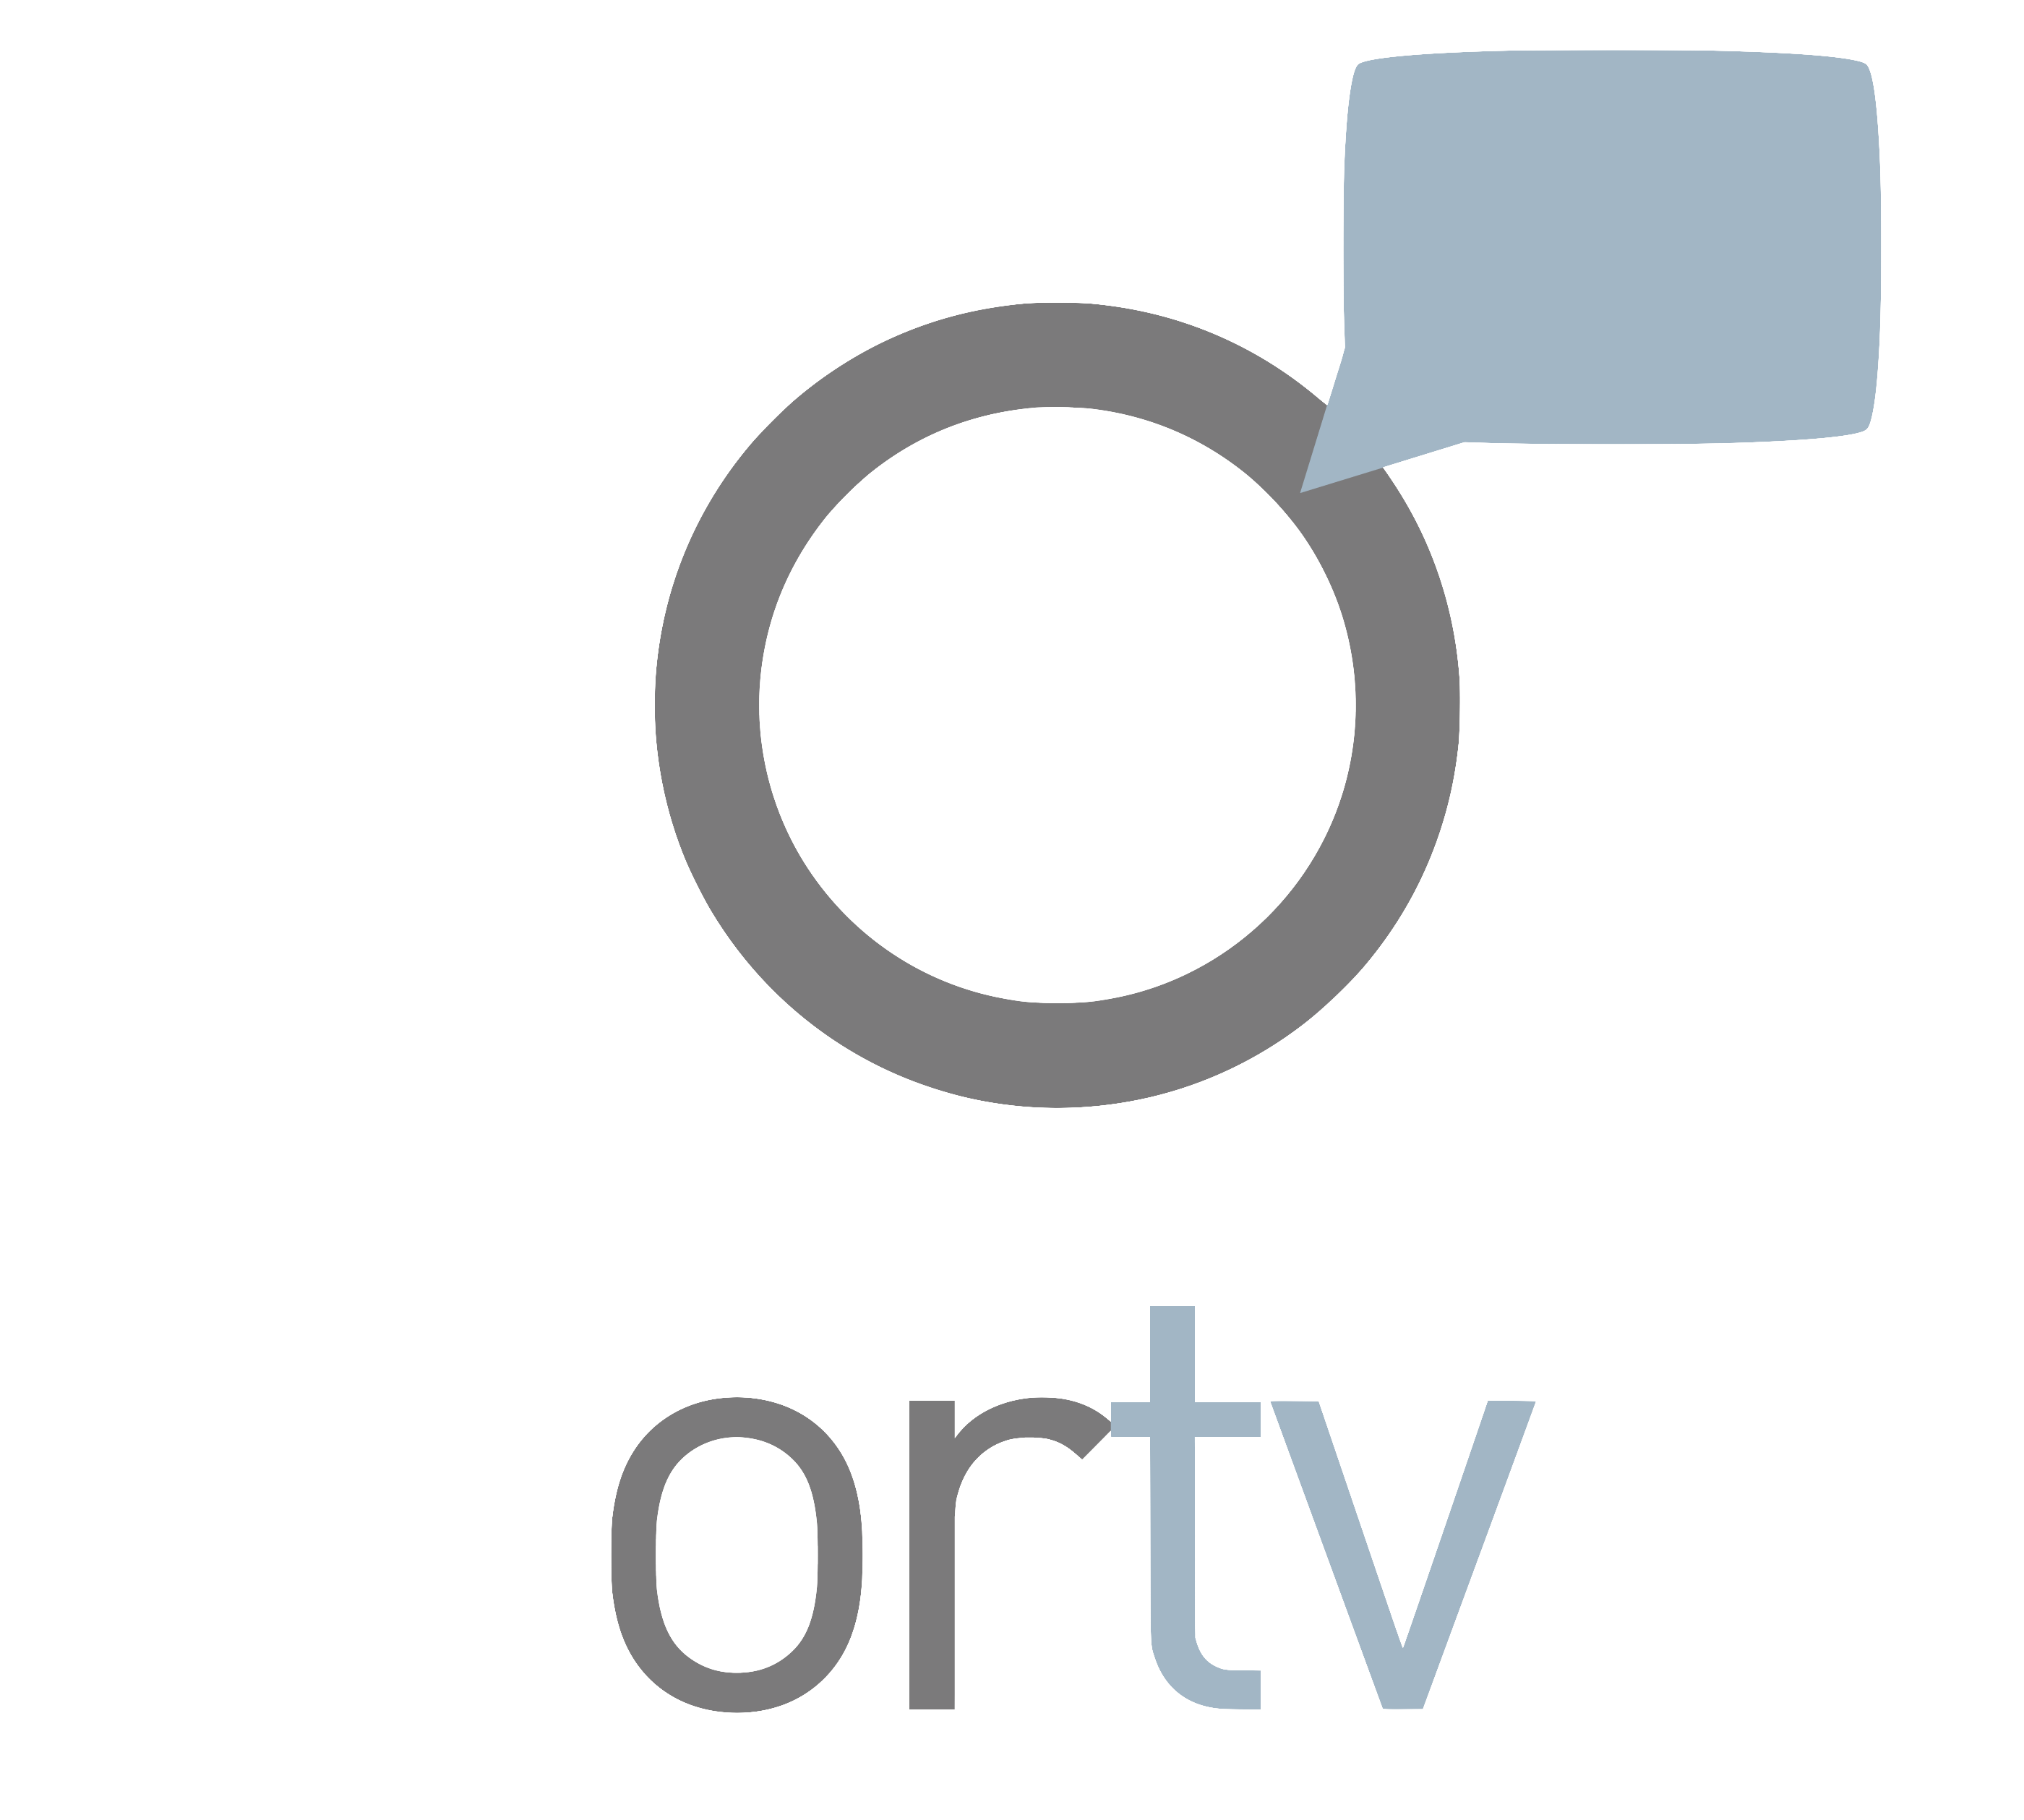 ORTV logo for surgical tv